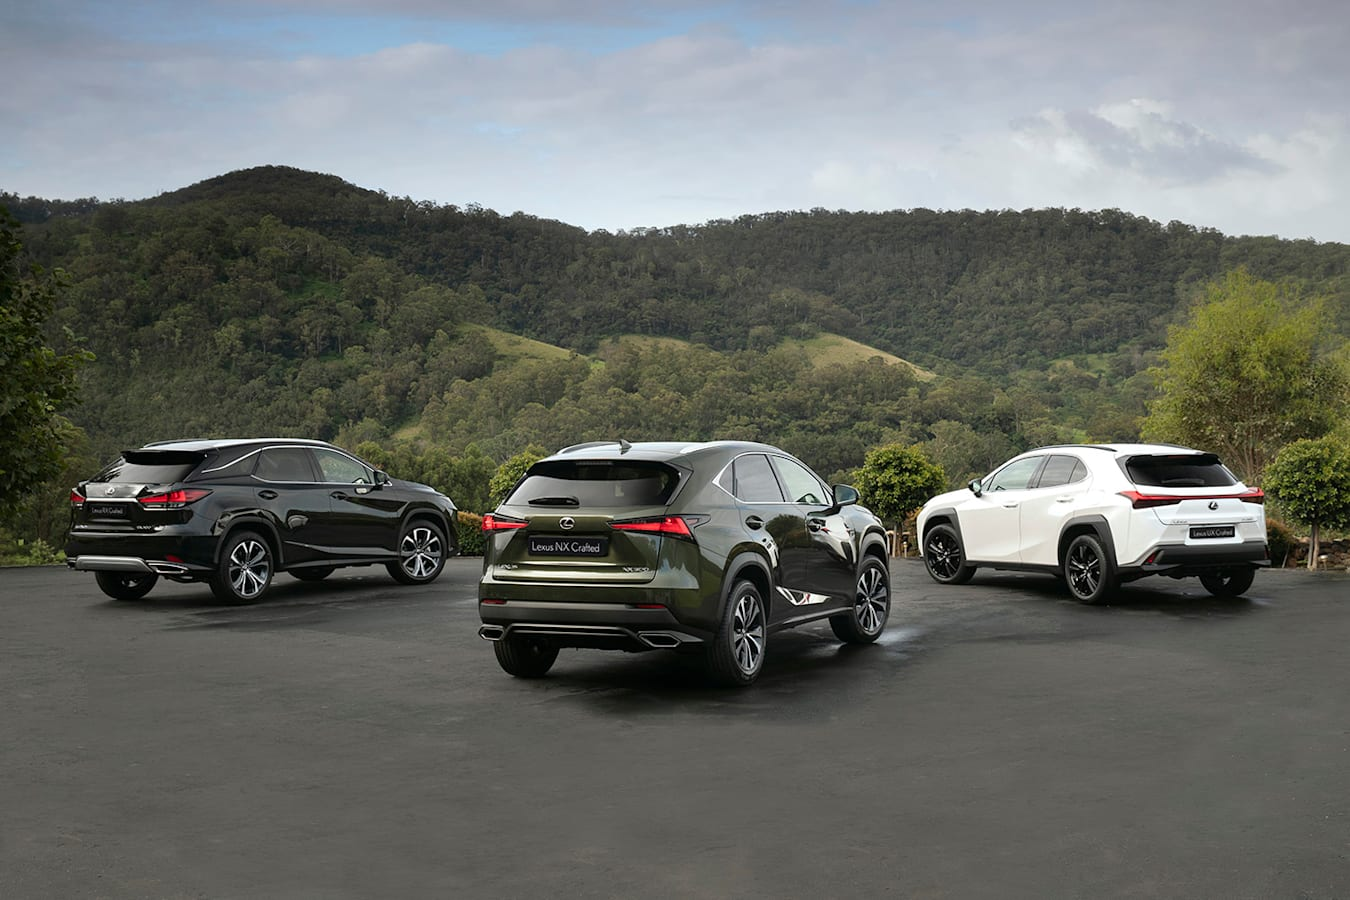 Lexus Crafted editions